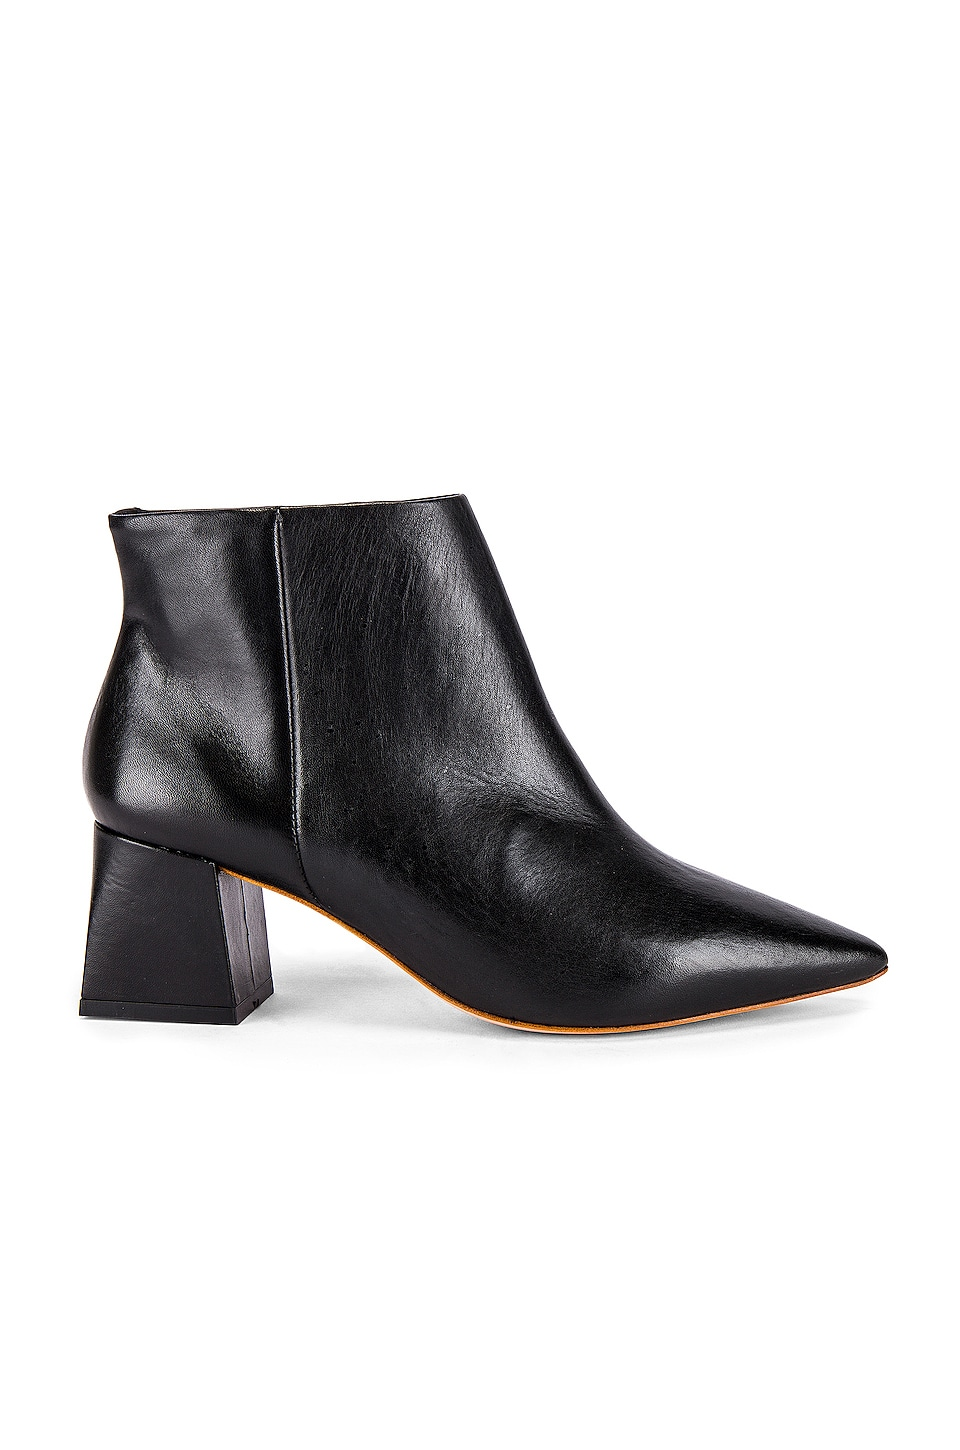 RAYE Corden Bootie in Black